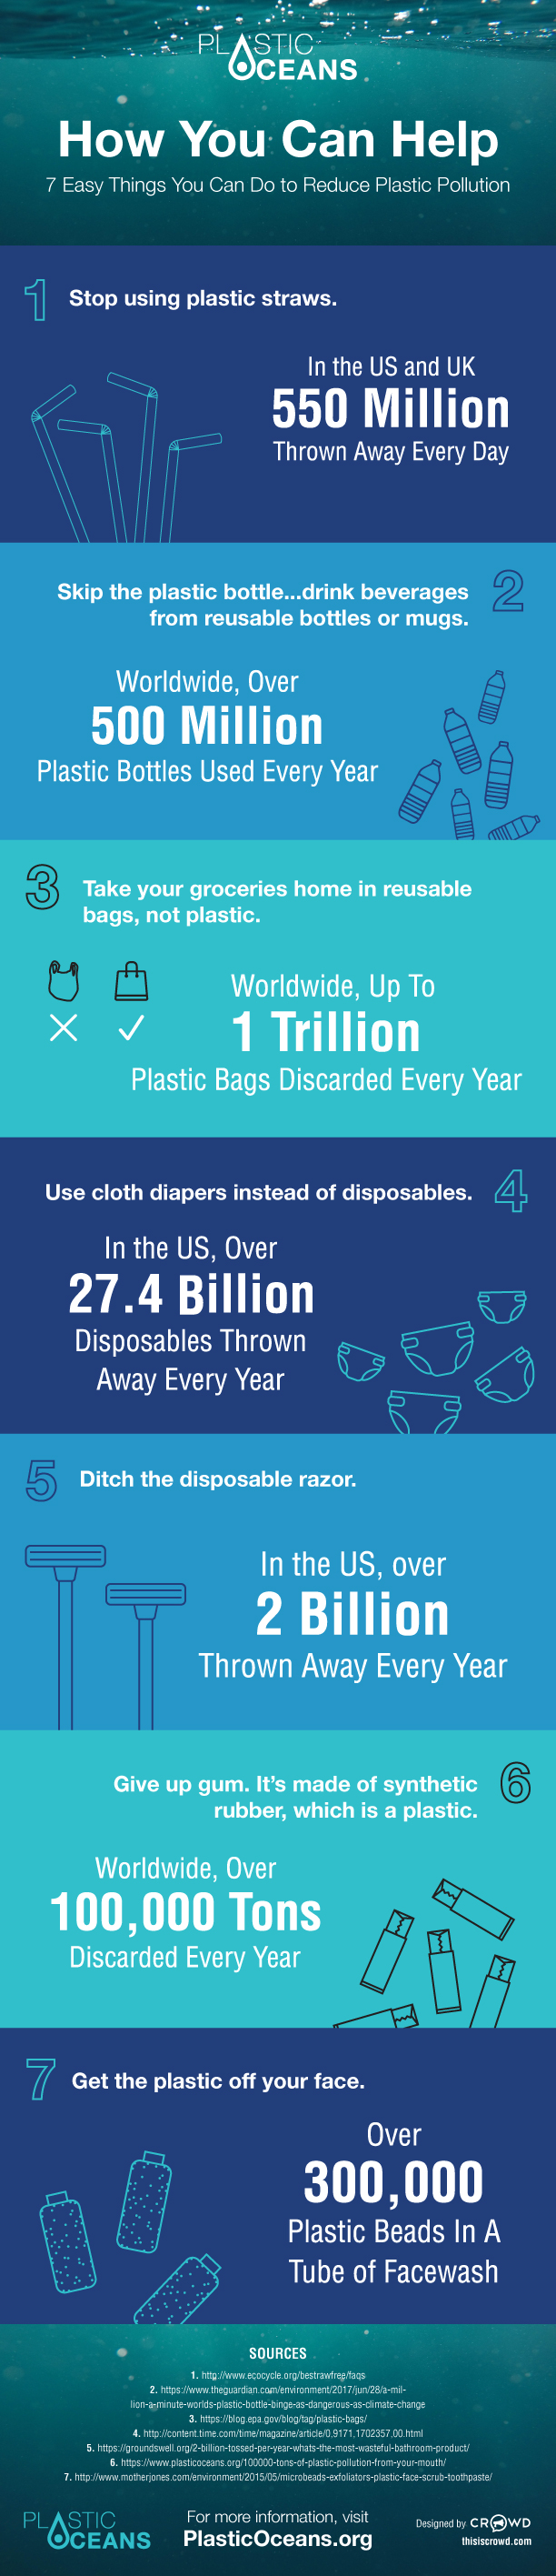 Plastic Pollution infographic